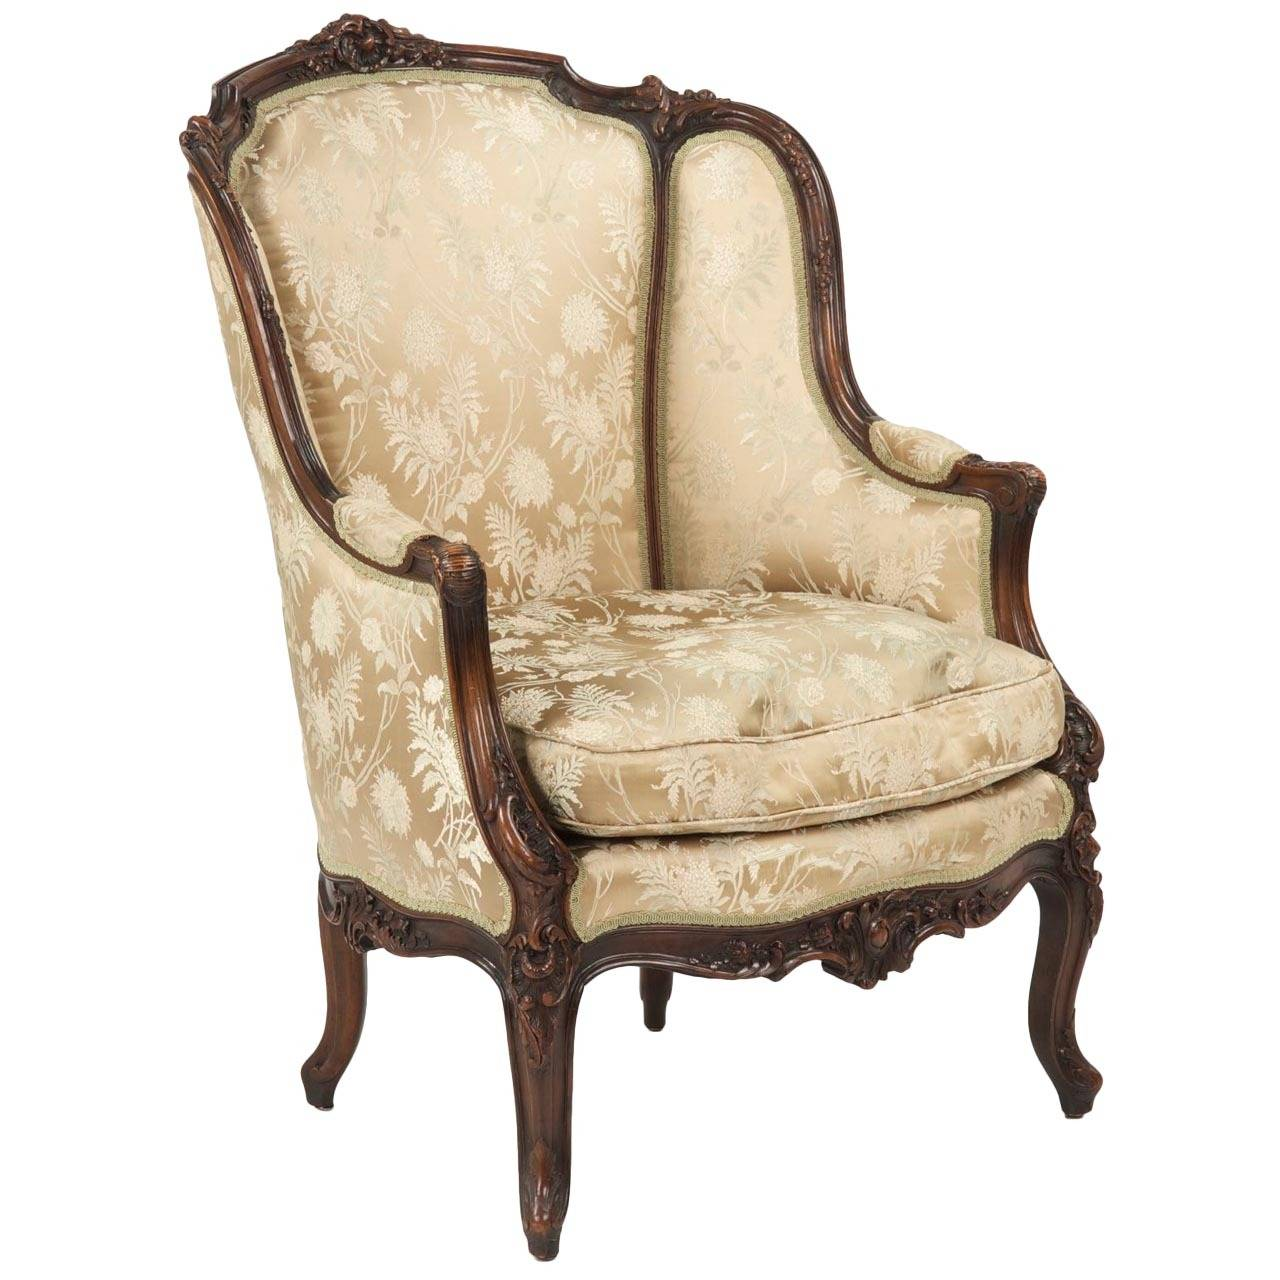 bergere chairs chair cover hire coventry 19th century rococo revival antique armchair in